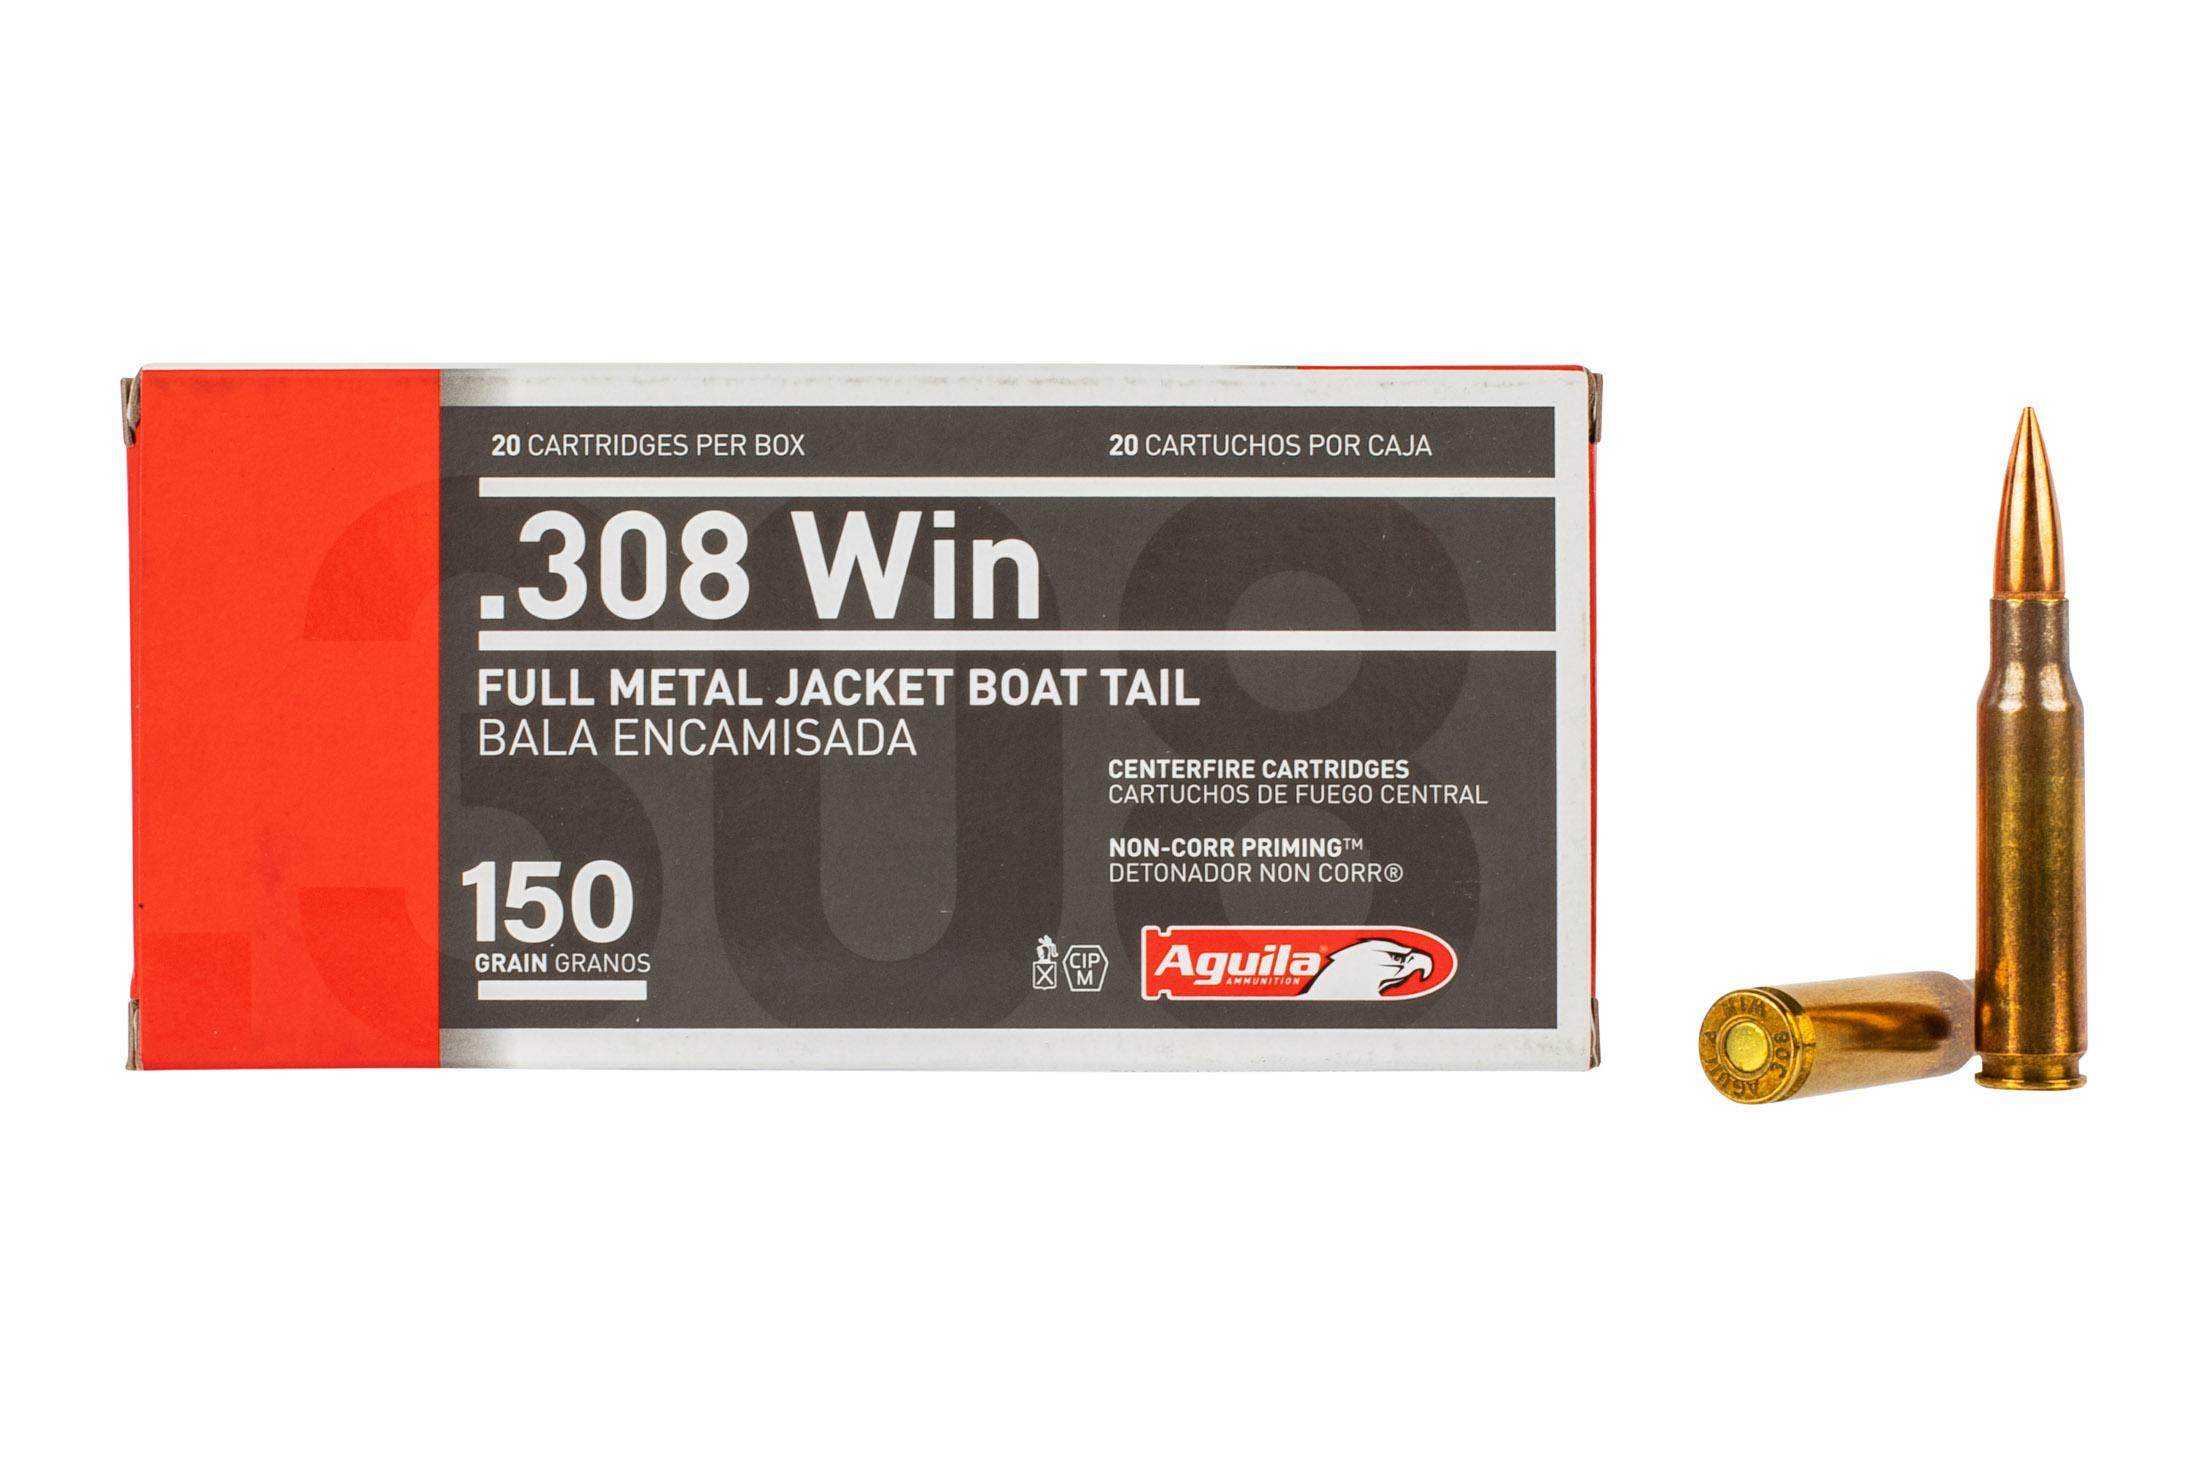 Aguila 308 Winchester 150 grain ammo features a full metal jacket boat tail bullet